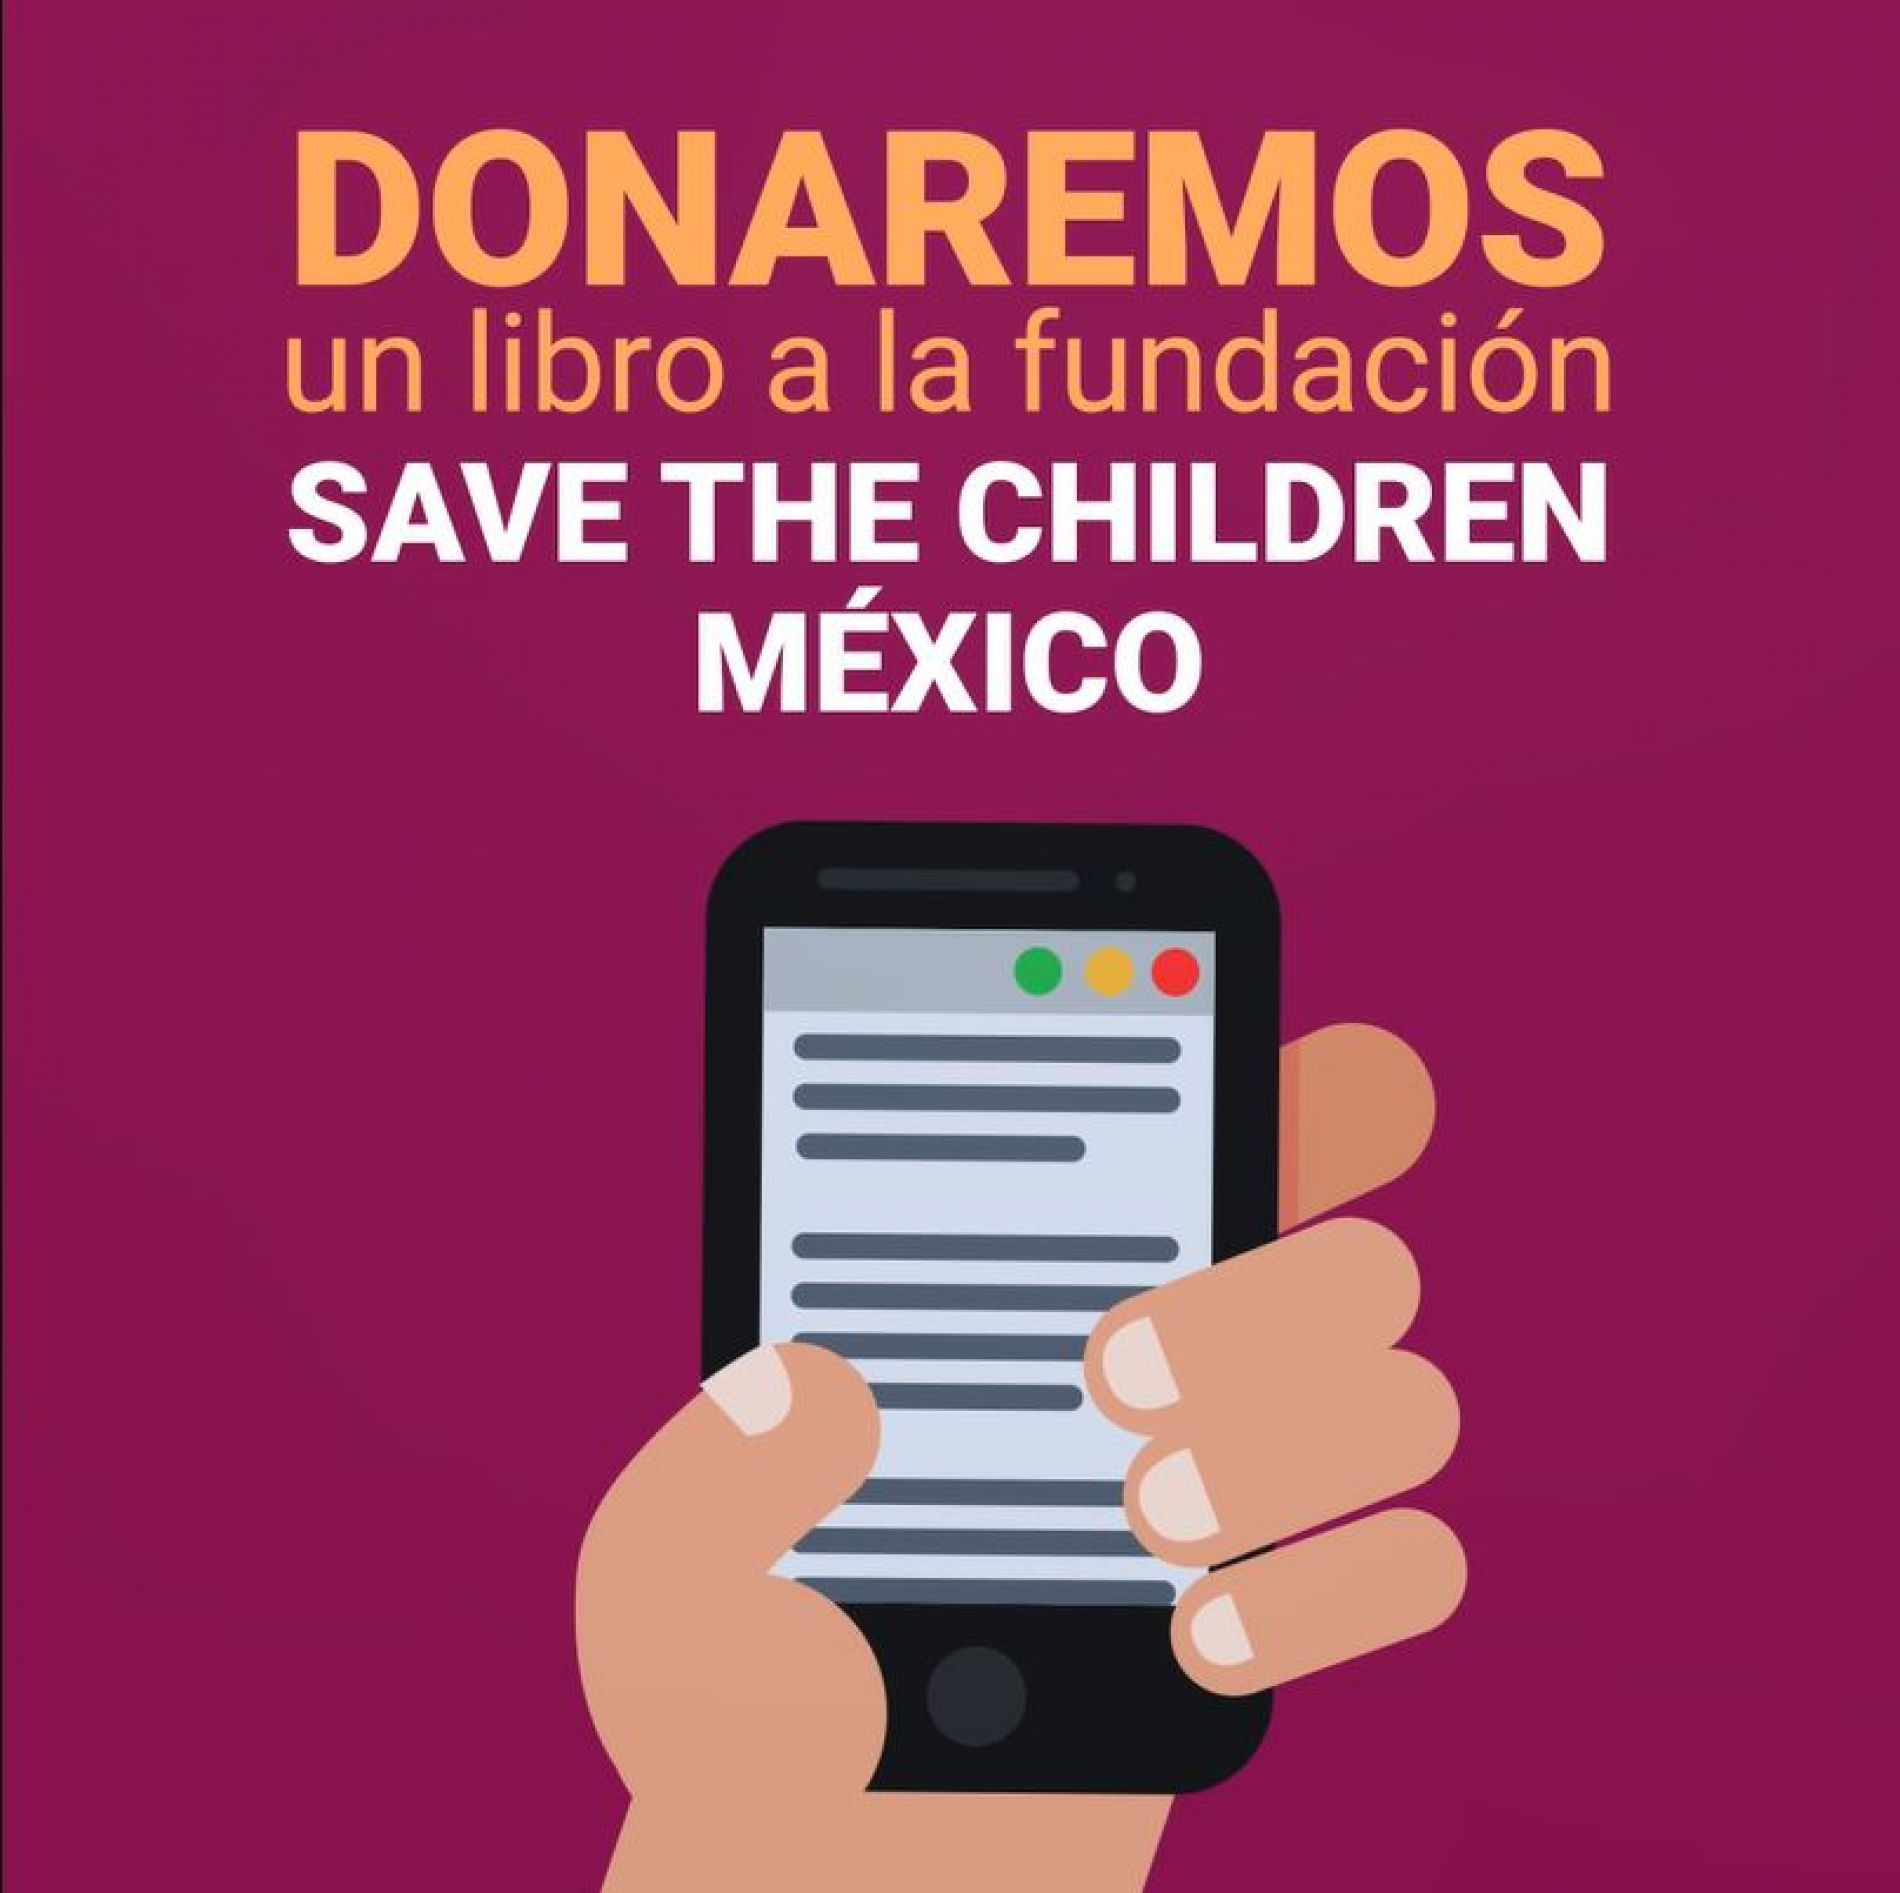 Donaremos un libro a la fundación Save the Children